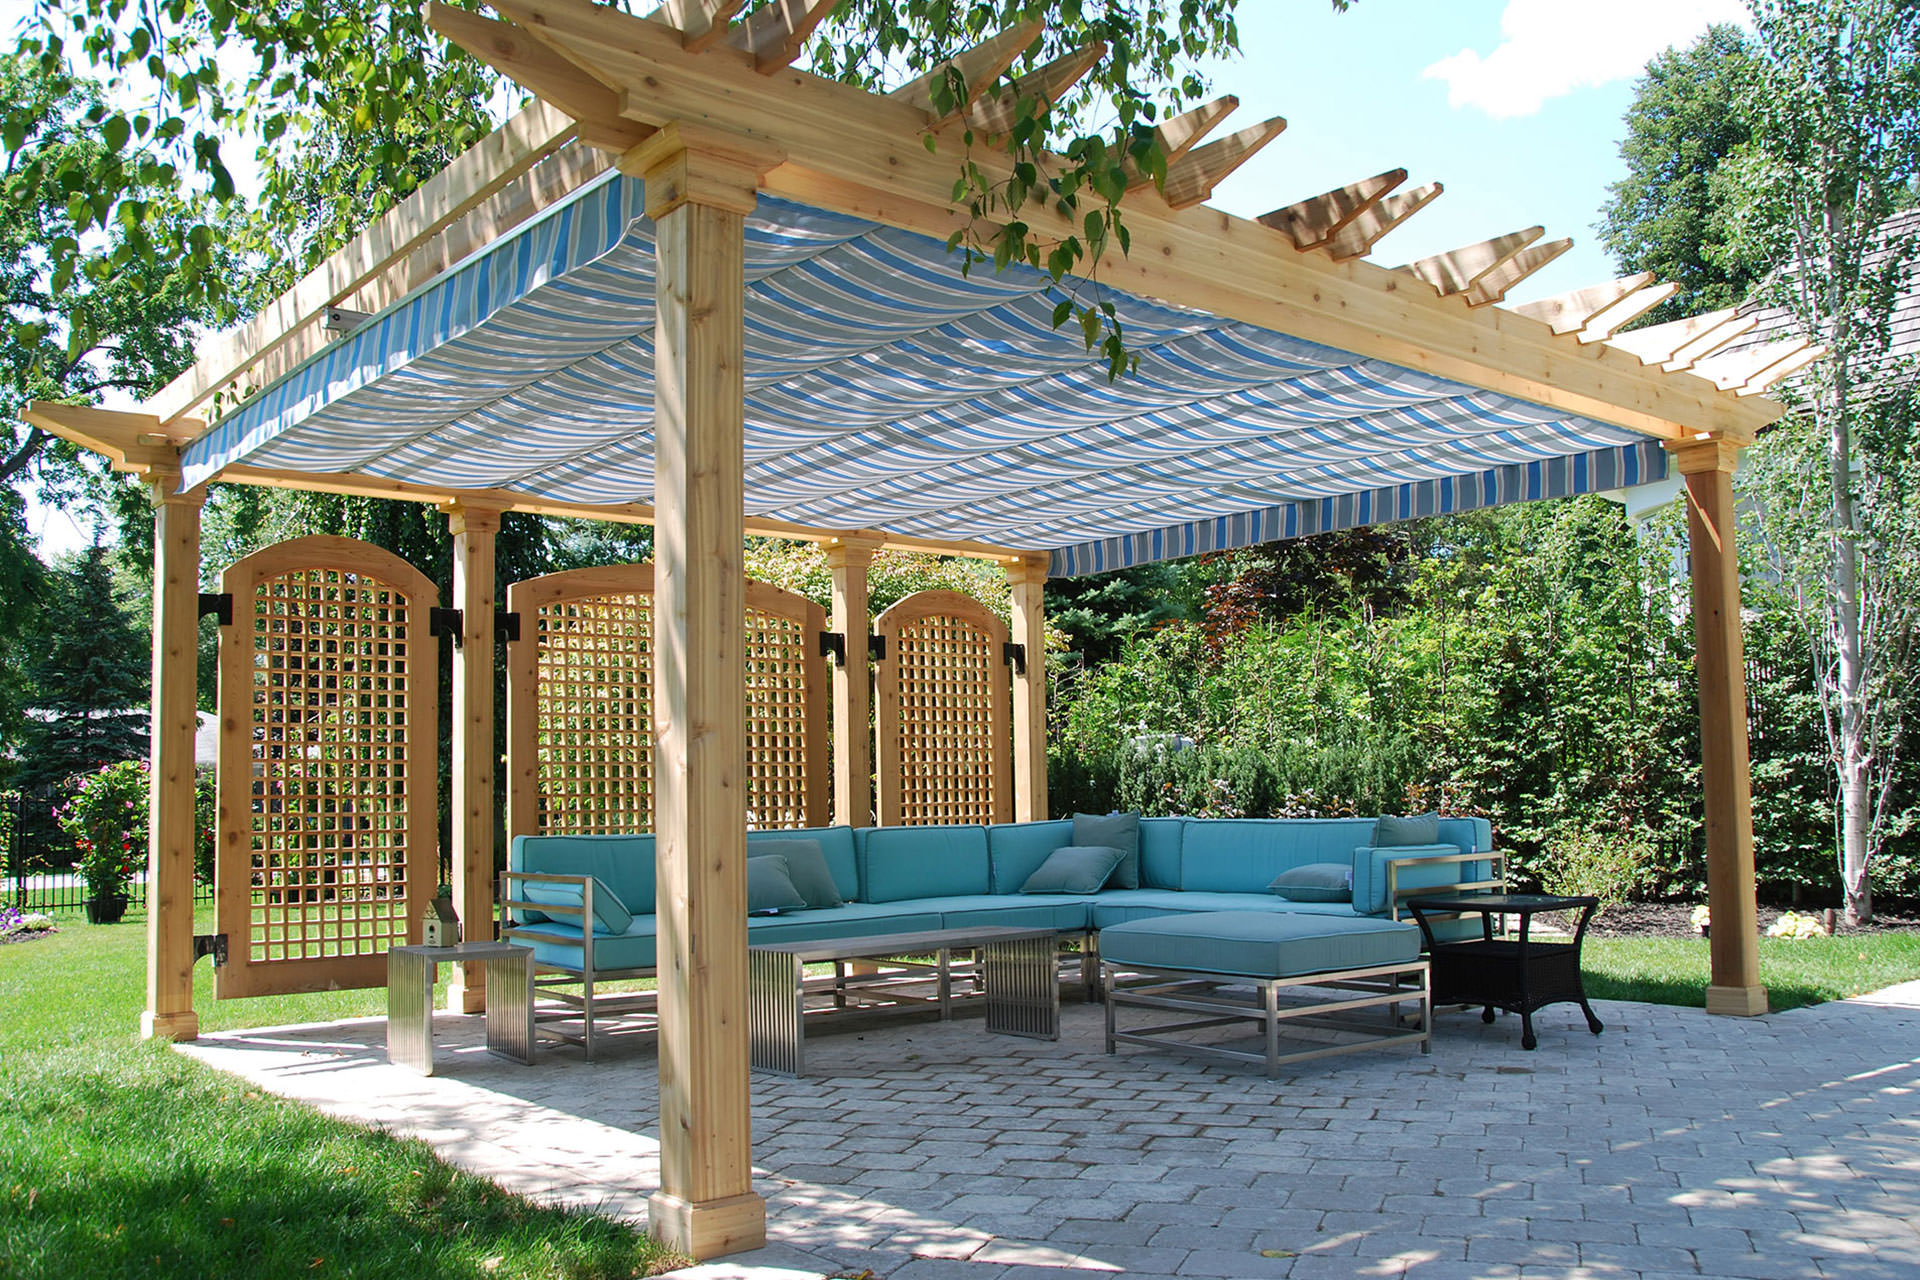 Retractable pergola canopy in oakville shadefx canopies for Pergolas para jardin